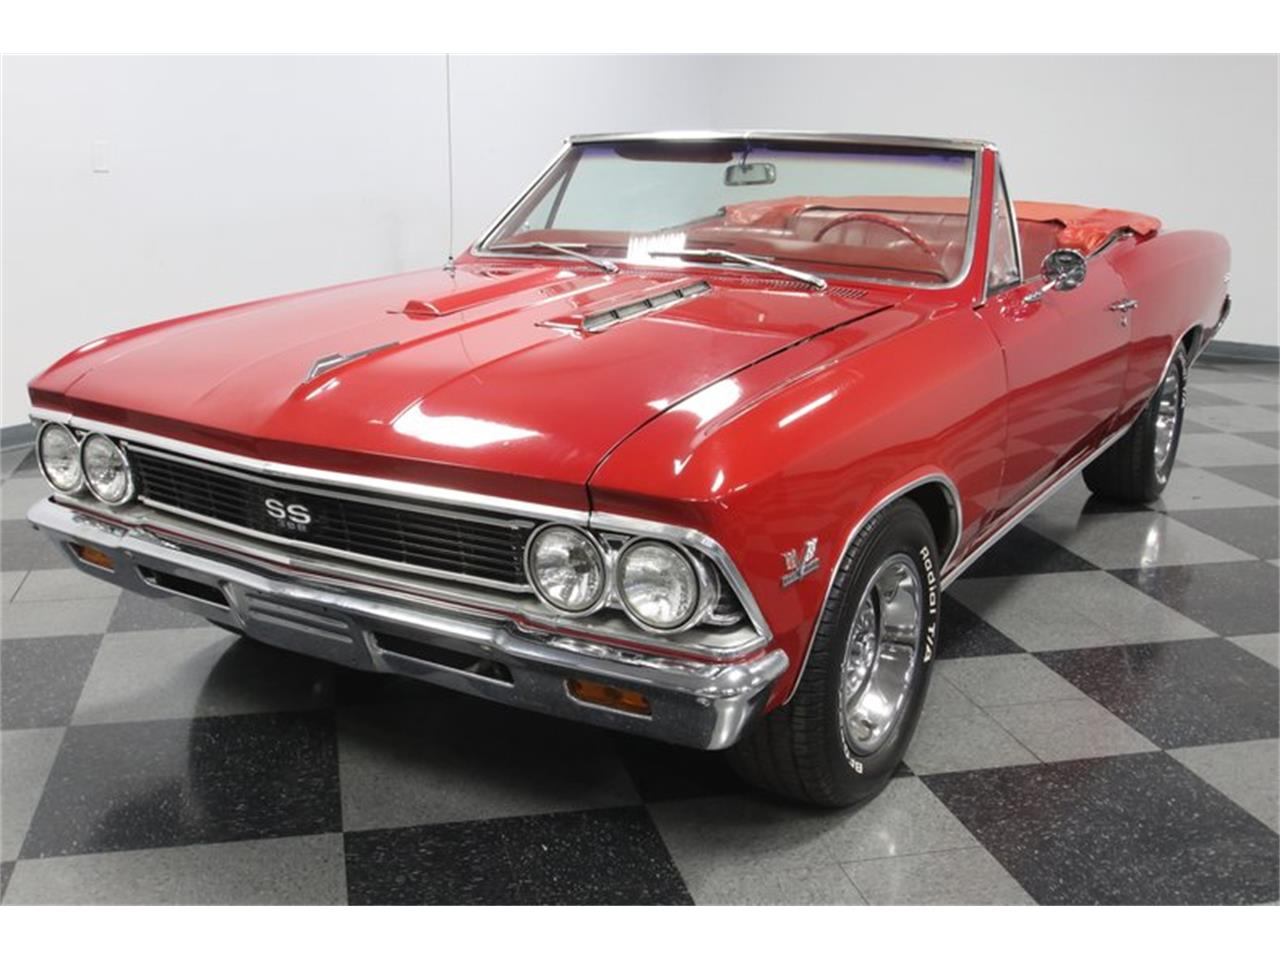 Large Picture of 1966 Chevrolet Chevelle located in North Carolina - $43,995.00 Offered by Streetside Classics - Charlotte - PS51